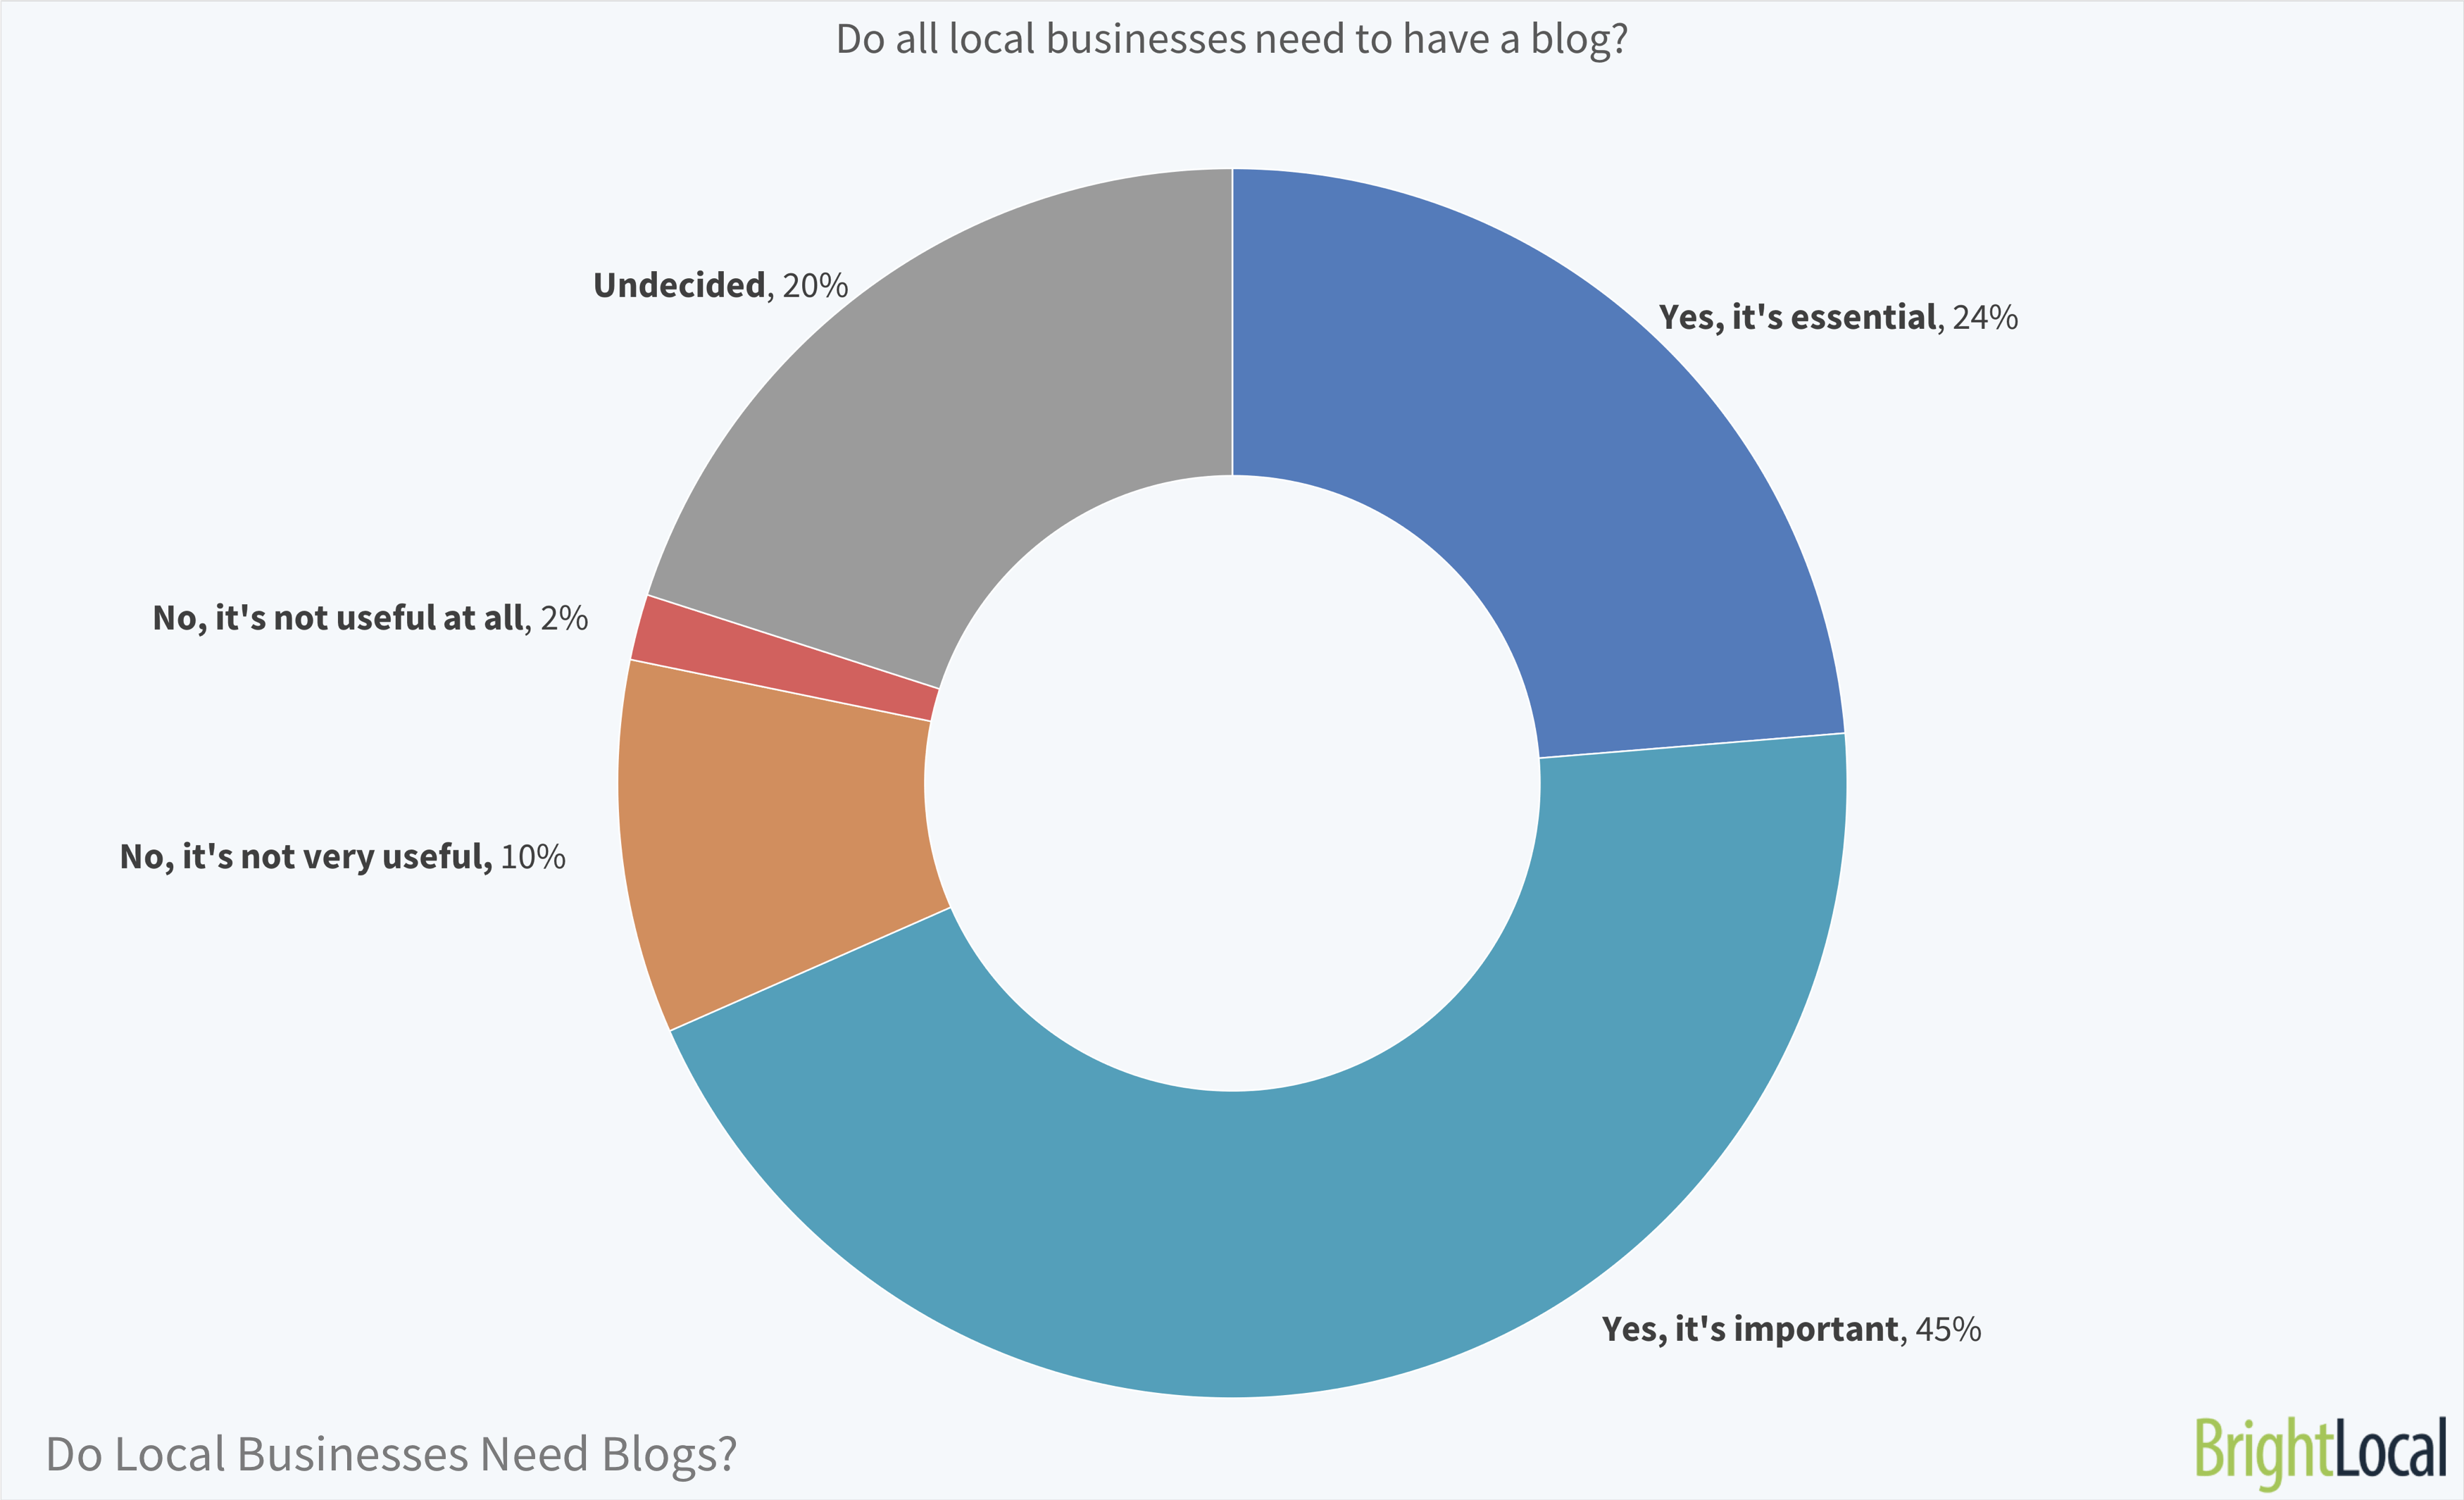 Do all local businesses need to have a blog? | BrightLocal Local Business Blog Survey